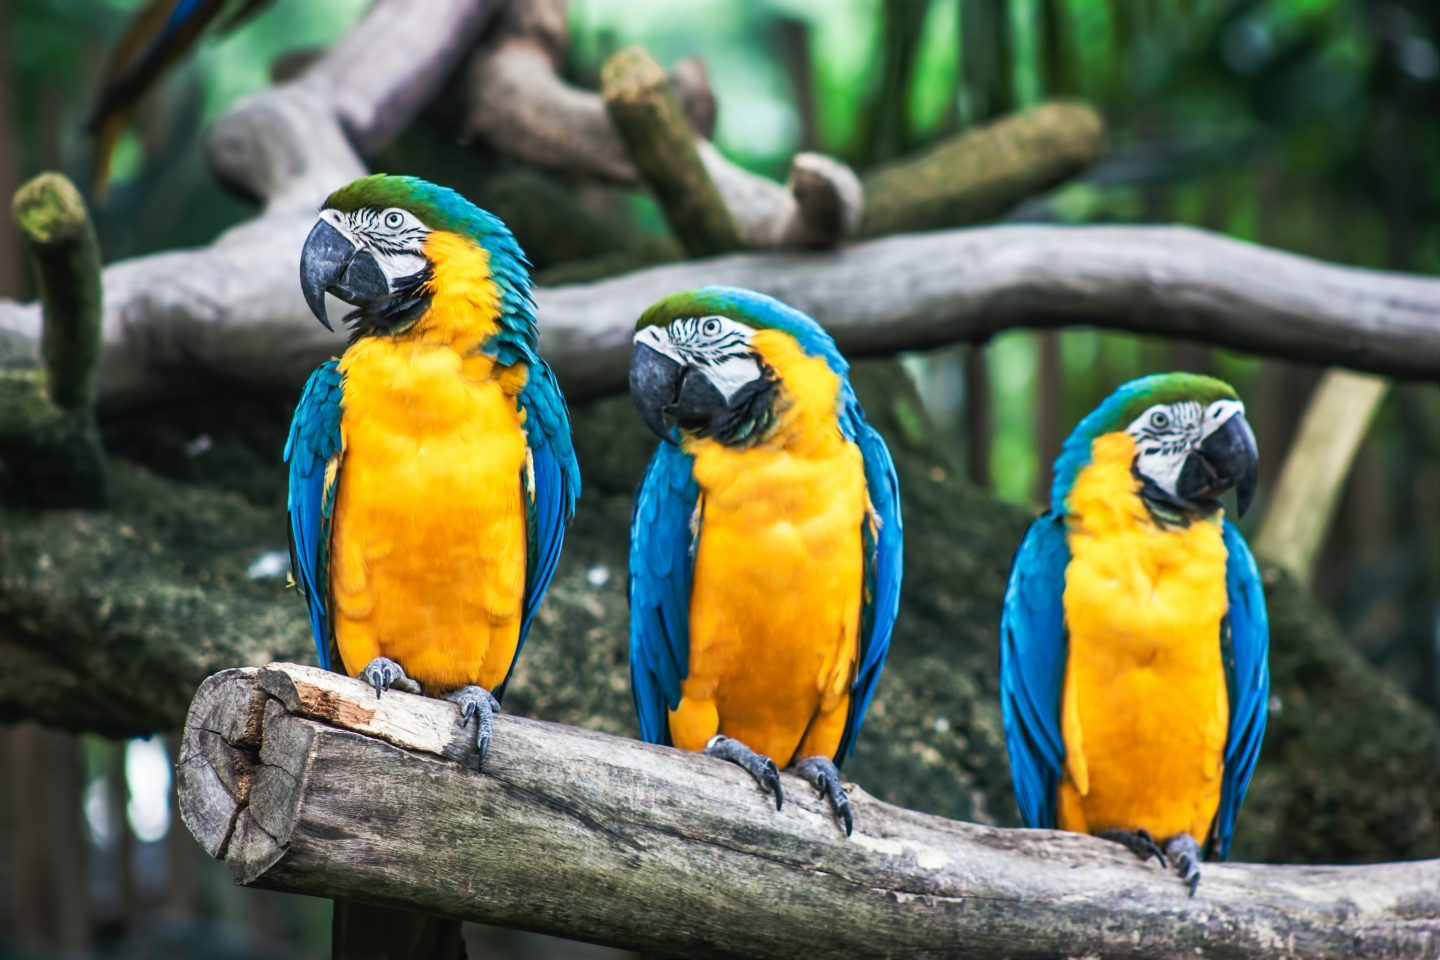 The Activities You Can Enjoy In Jurong Bird Park